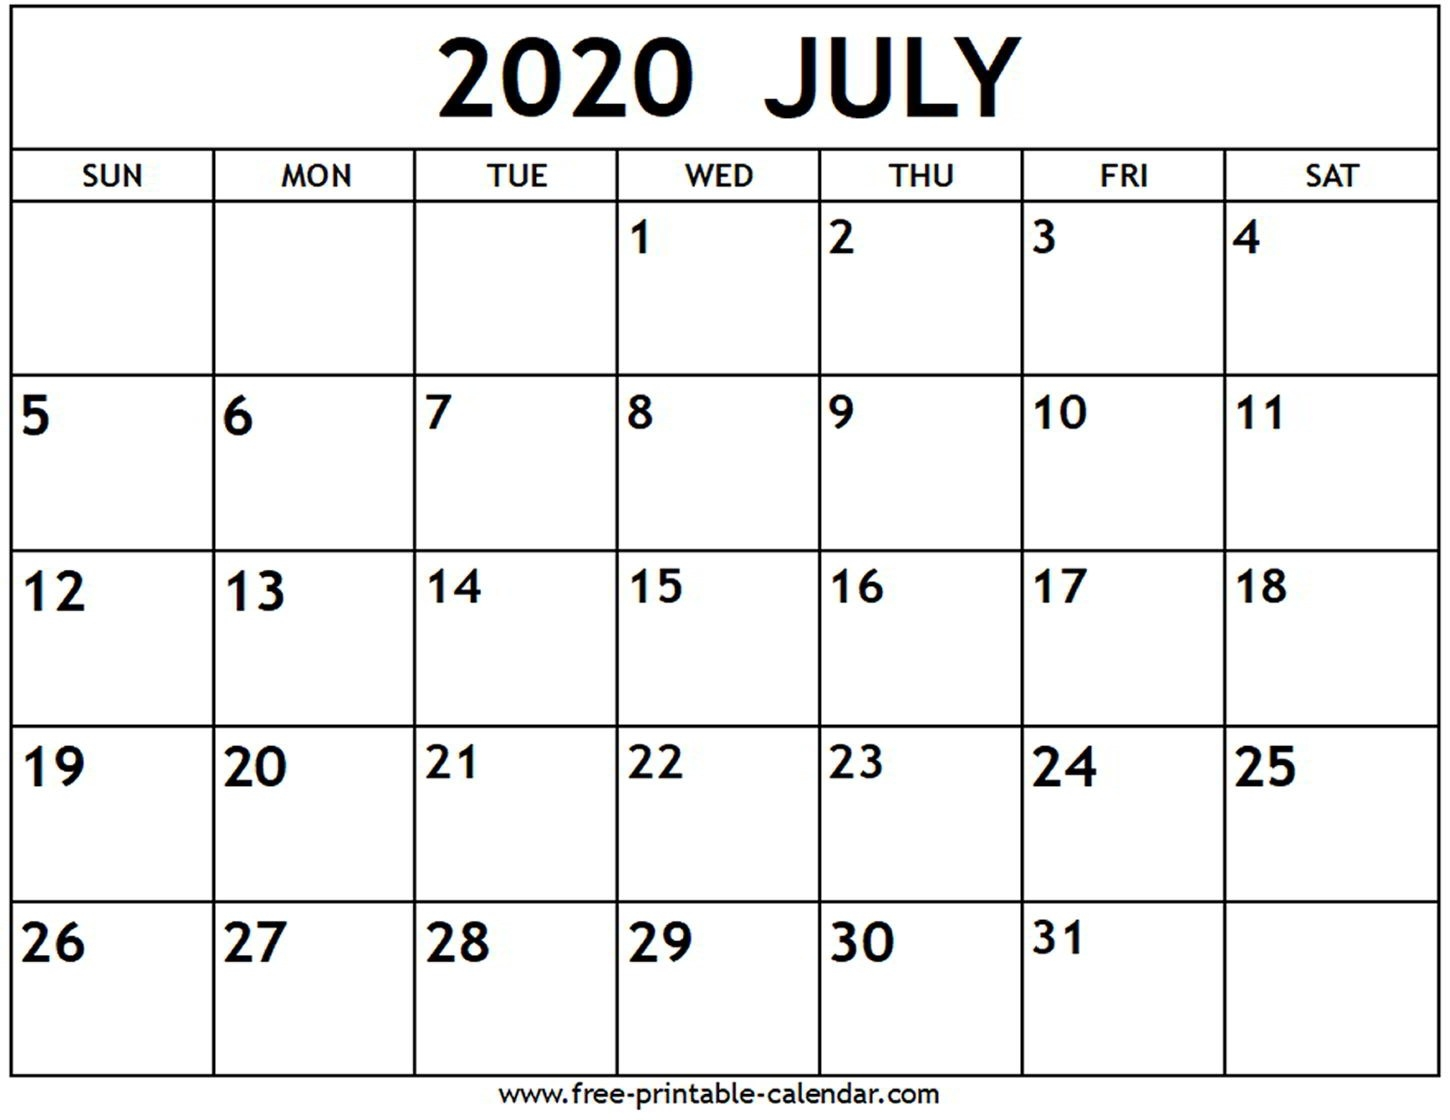 July 2020 Calendar - Free-Printable-Calendar-Blank Monthly Calendar Printable July 2020